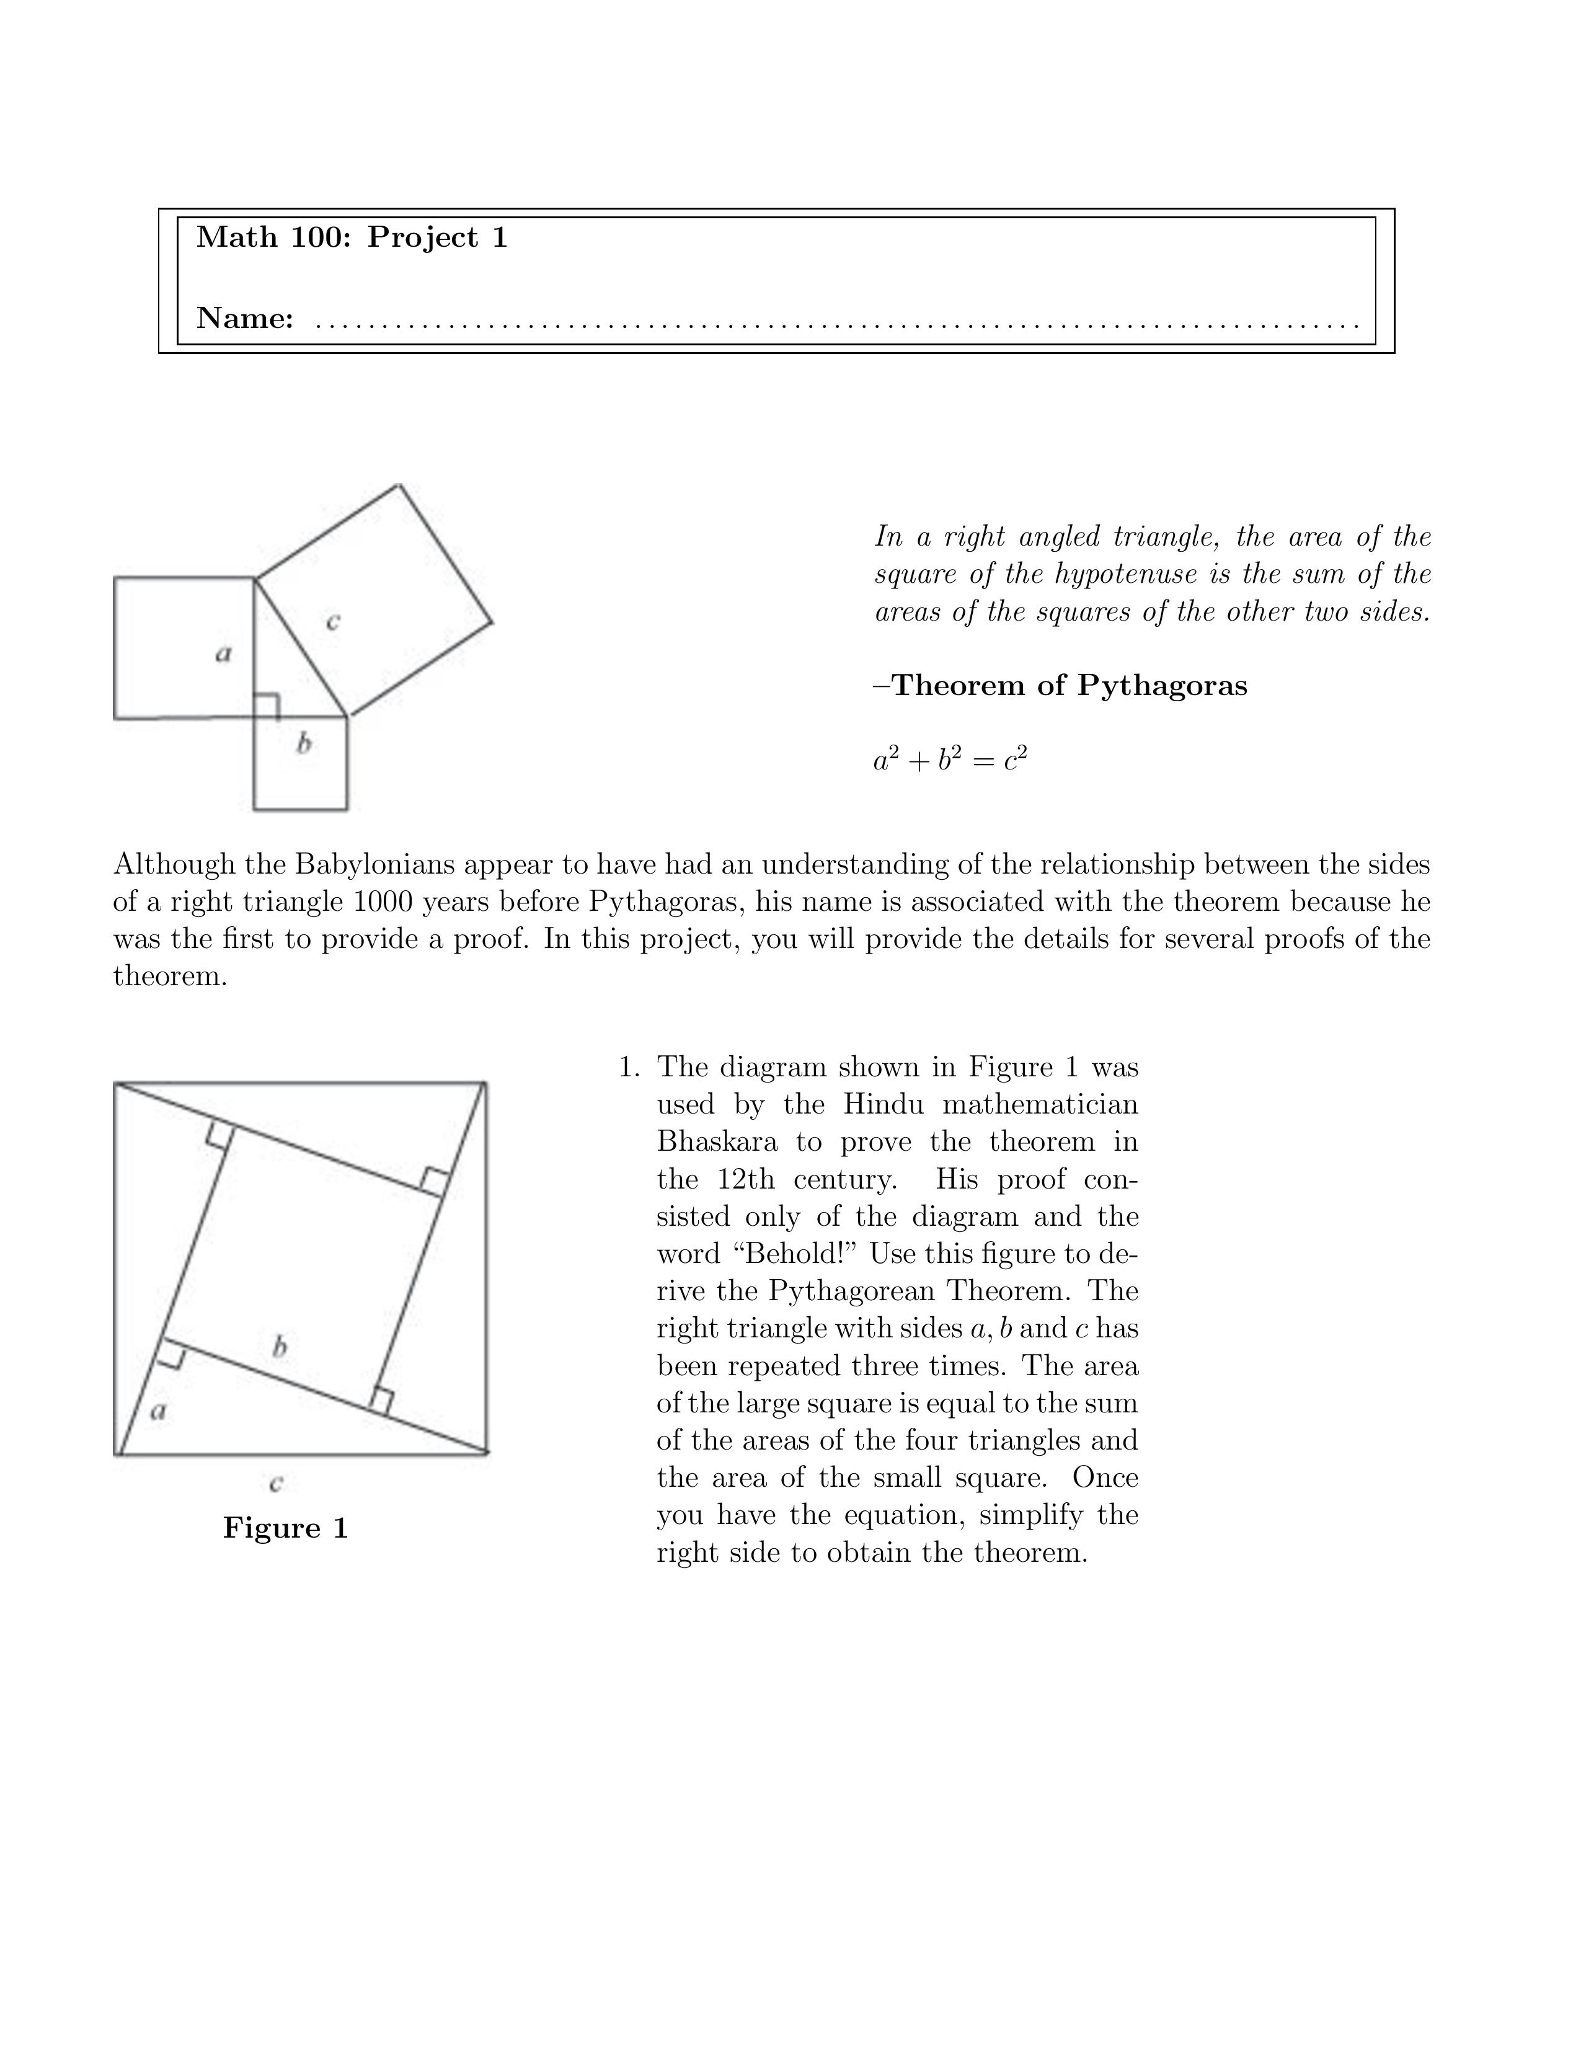 In A Right Angled Triangle, The Area Of The Square